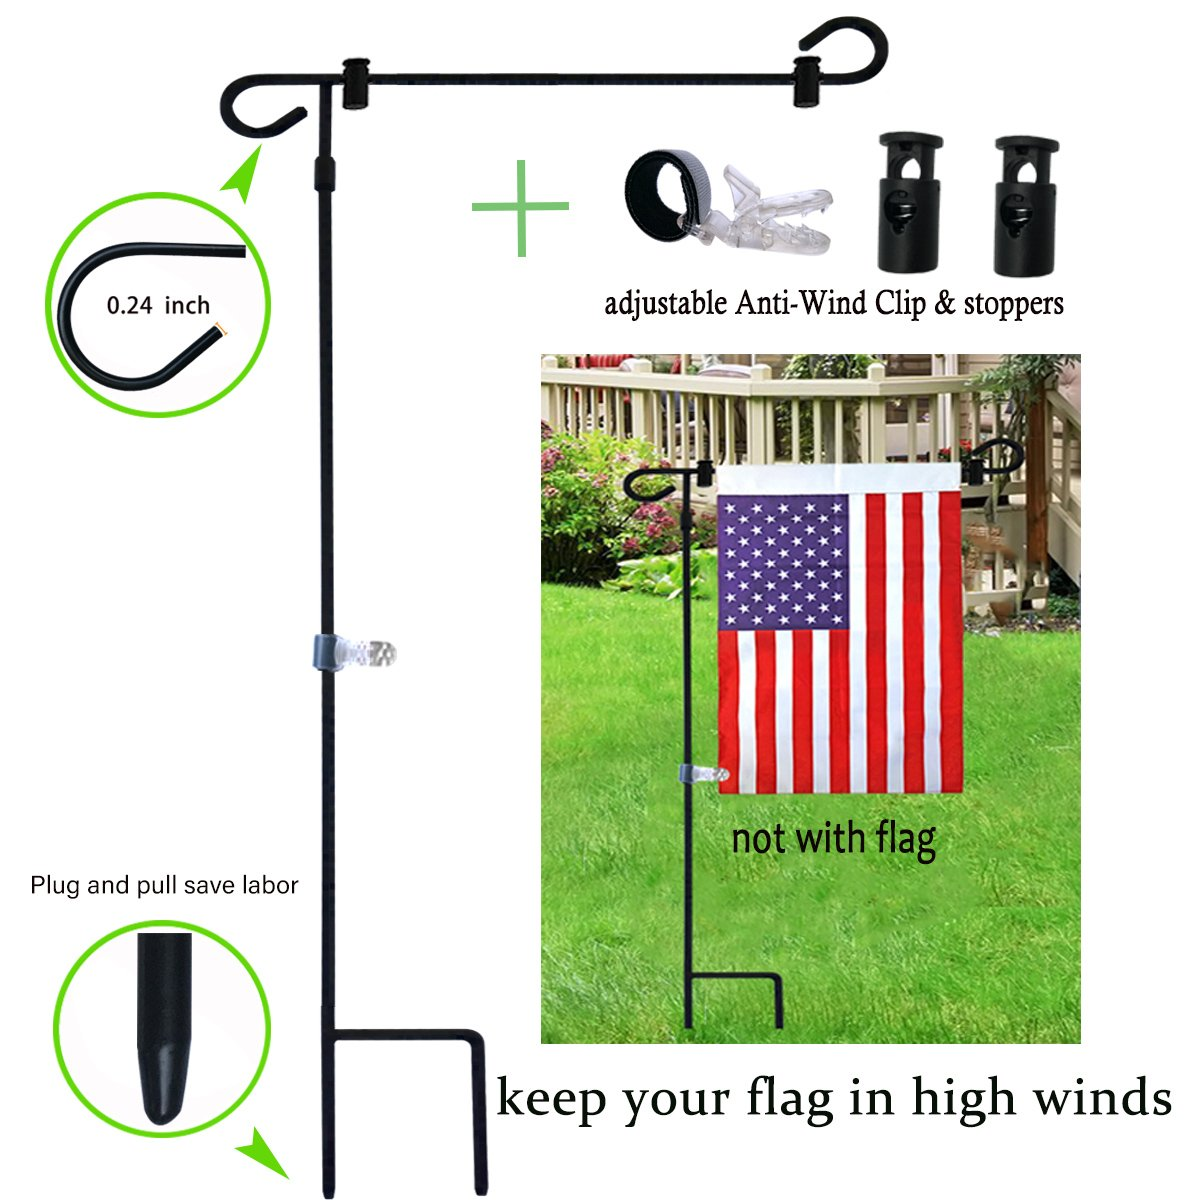 W&X Garden Flag Stand-Holder-Pole with Stopper and Anti-Wind Clip Powder-Coated Water-Proof Paint 36.3'' H x 16.5'' W Keep Your Flags from Flying Away in High Winds